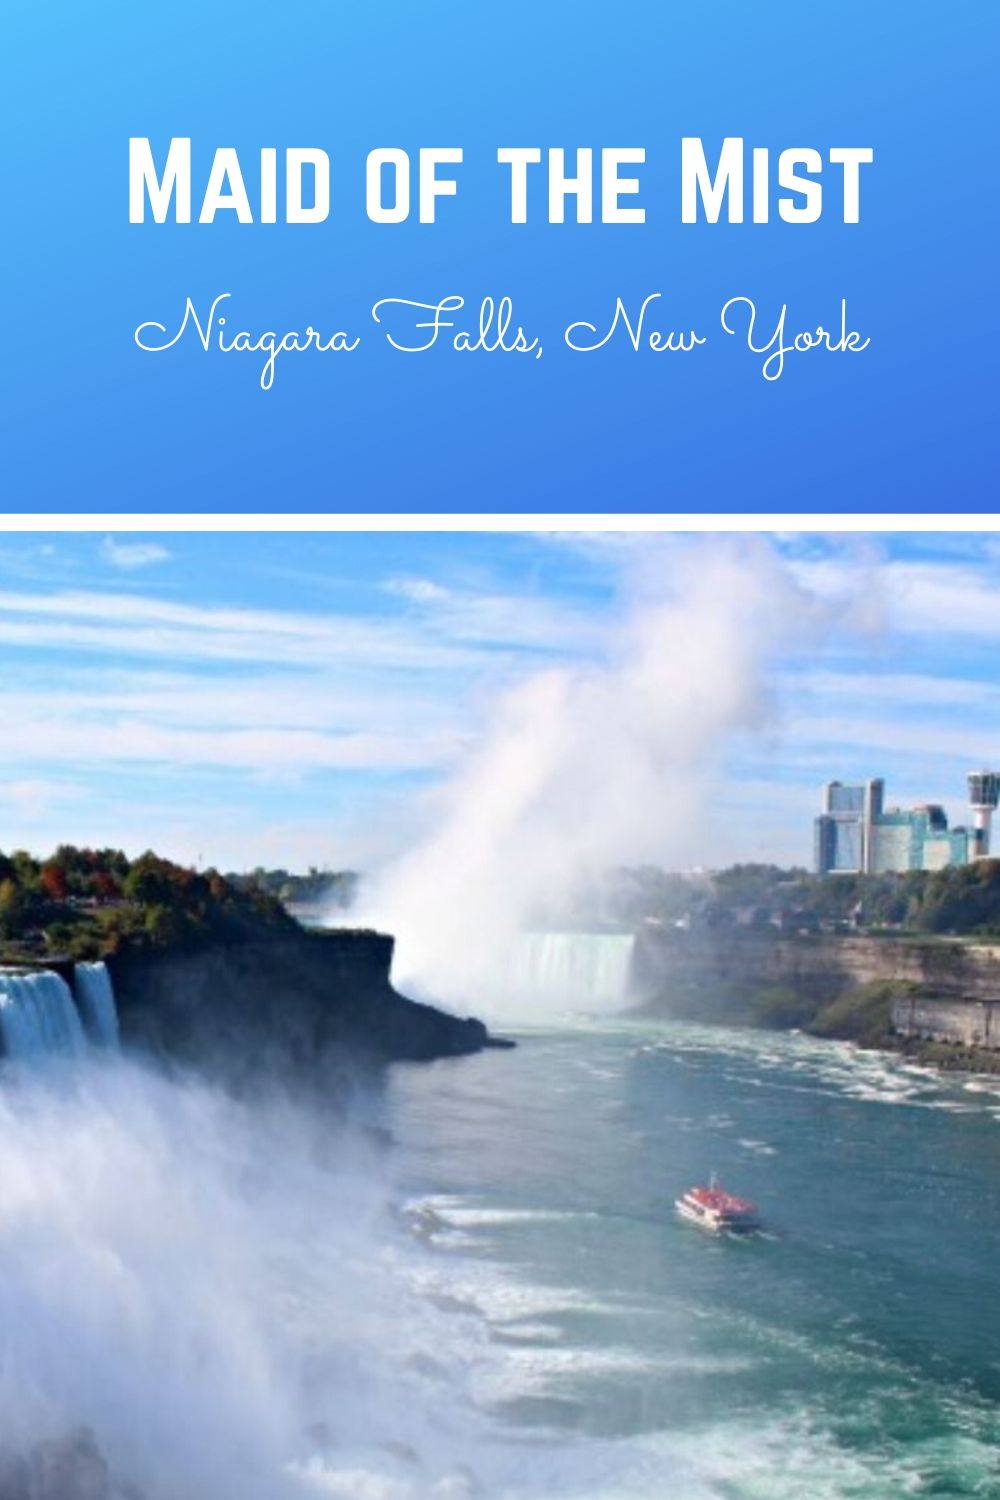 Maid of the Mist at Niagara Falls is a must do for families. A leisurely boat ride takes you close to the falls, where you're sure to get wet! It's an amazing adventure! #niagarafallsmaidofthemist #maidofthemist #niagarafalls #niagarafallsnewyork #thingstodoinniagarafalls #thingstodoniagarafalls #niagarafallswithkids #niagarafallsusa #niagarafallsvacation #niagarafallsusside